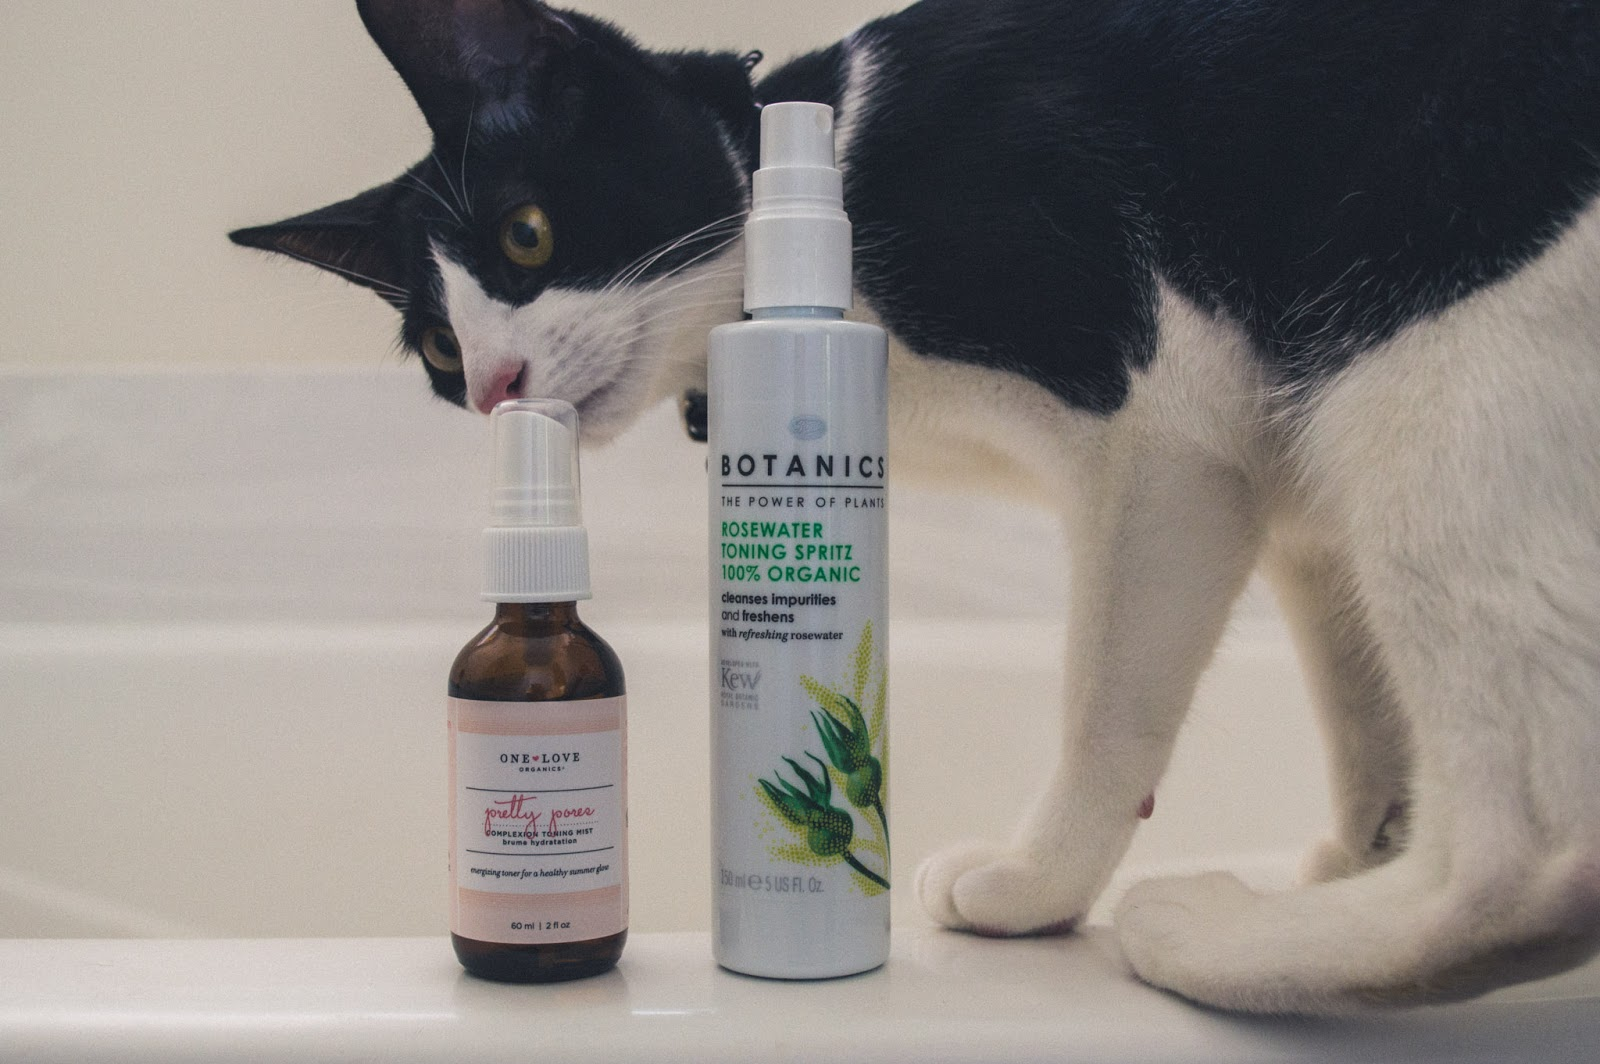 Wedge, cat, smelling One Love Organics Pretty Pore Complexion Toning Mist and Boots Botanics Rosewater Toning Spritz